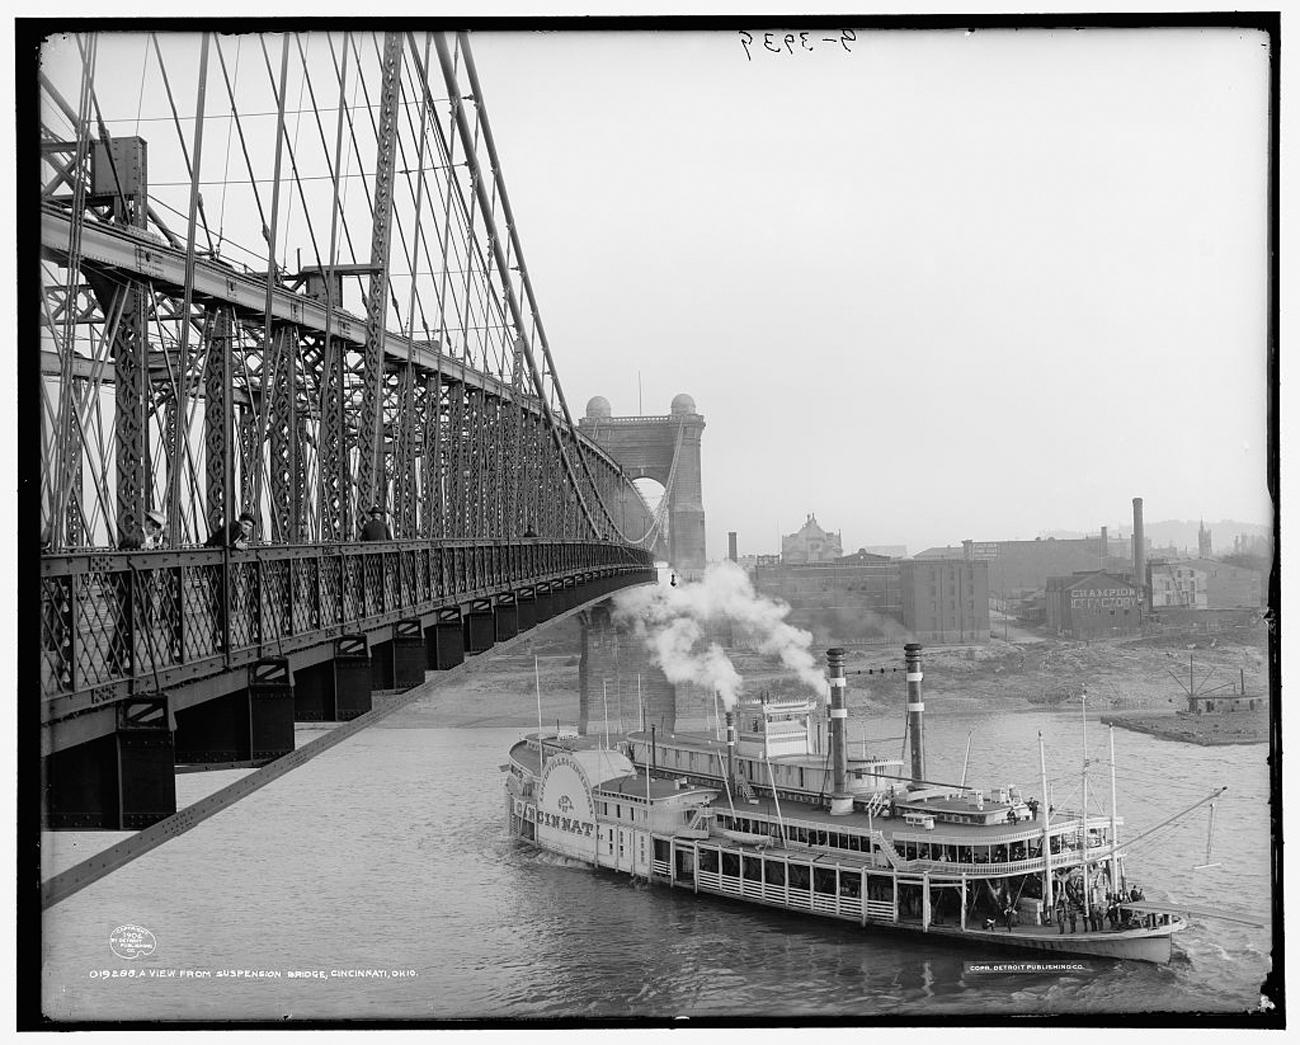 """A View from Suspension Bridge, Cincinnati, Ohio""{ }in 1906{ }/ Image: Detroit Publishing Co. accessed via the Library of Congress // Published: 3.4.19"